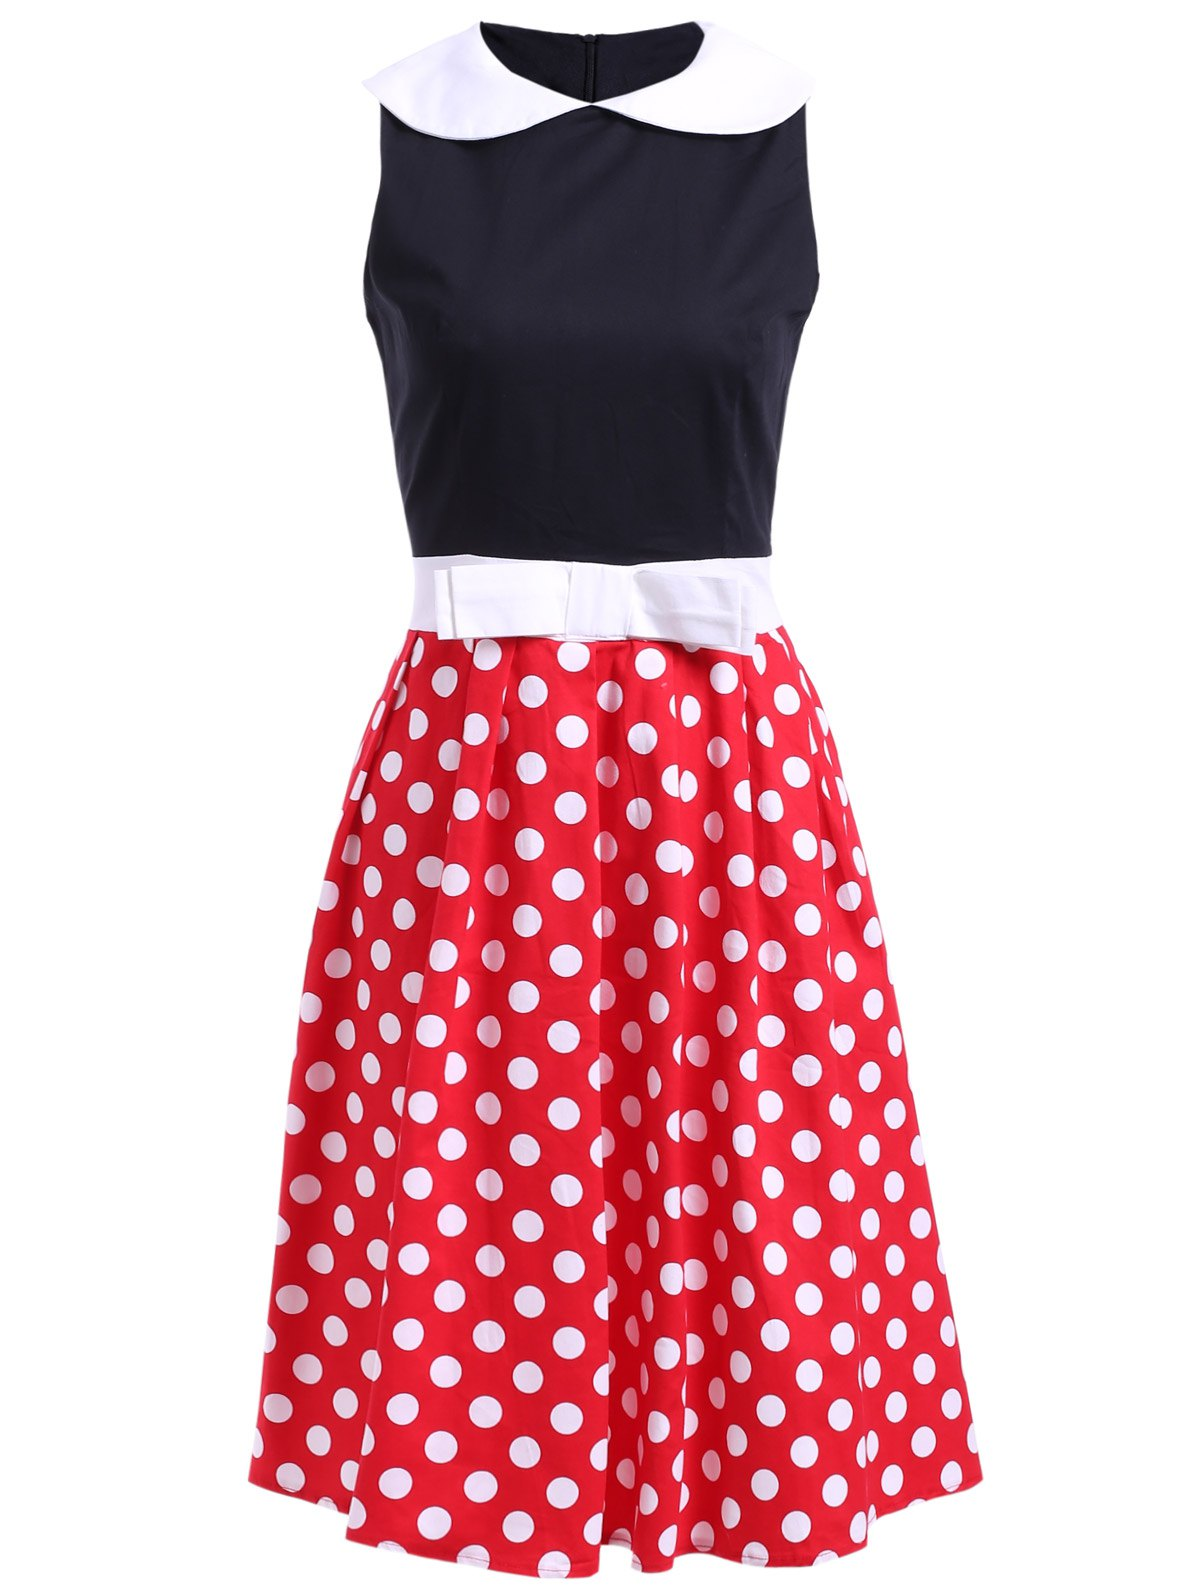 Sweet Sleeveless Peter Pan Collar Bowknot Embellished Polka Dot Women's Dress - BLACK 2XL